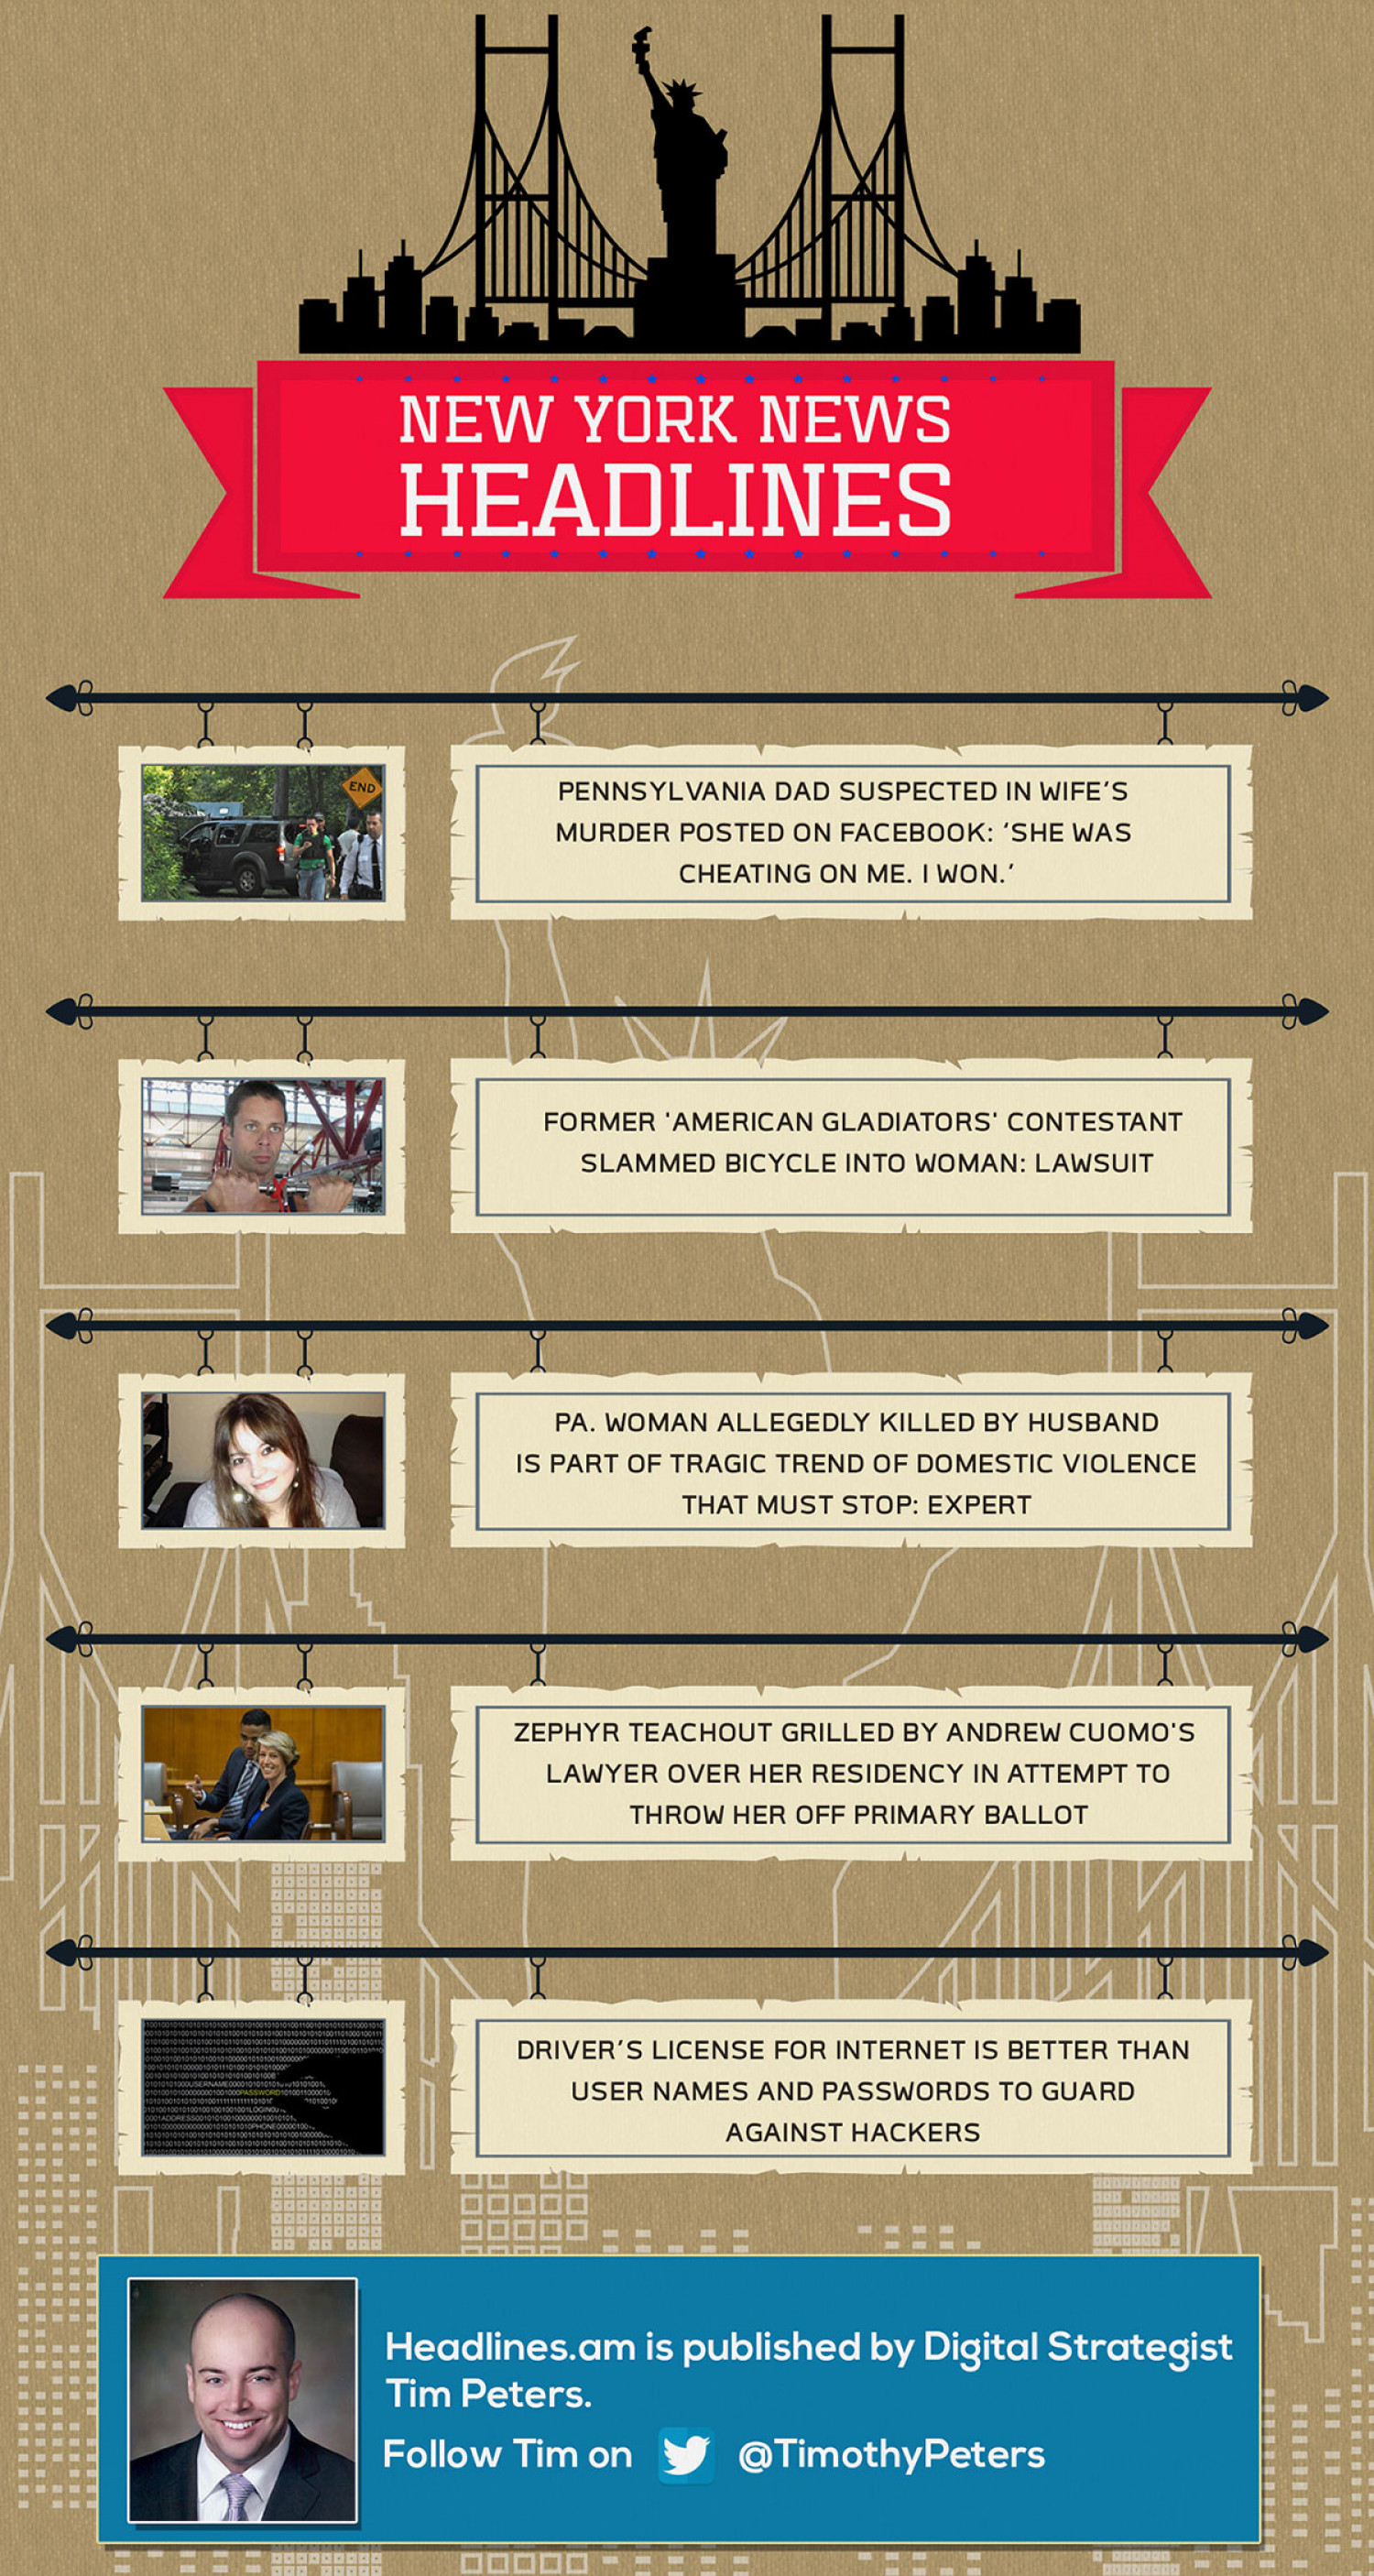 NEW YORK NEWS - AUGUST 8, 2014 Infographic